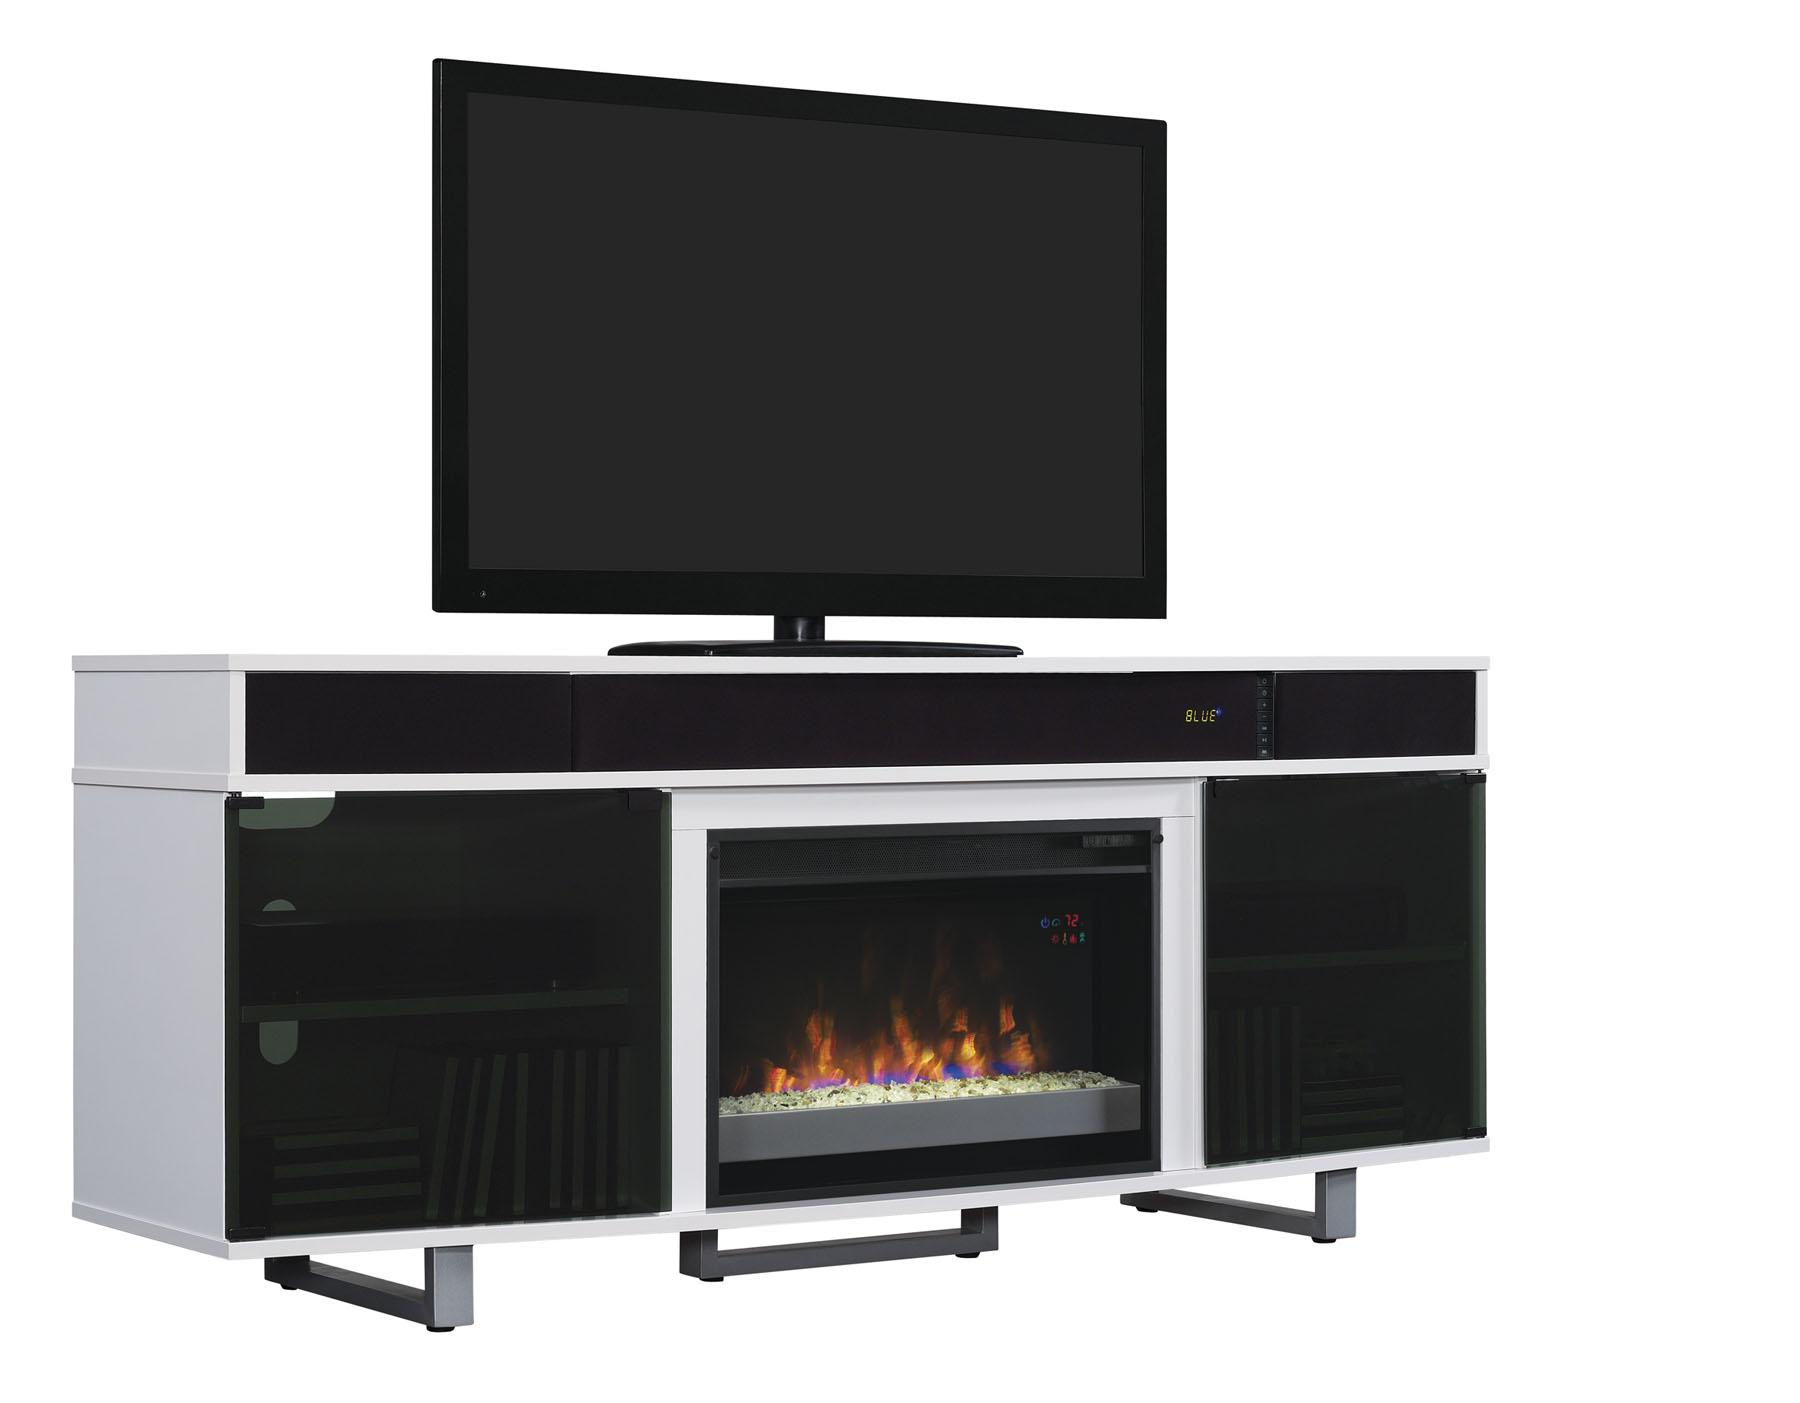 White tv stand with electric fireplace - From The Manufacturer